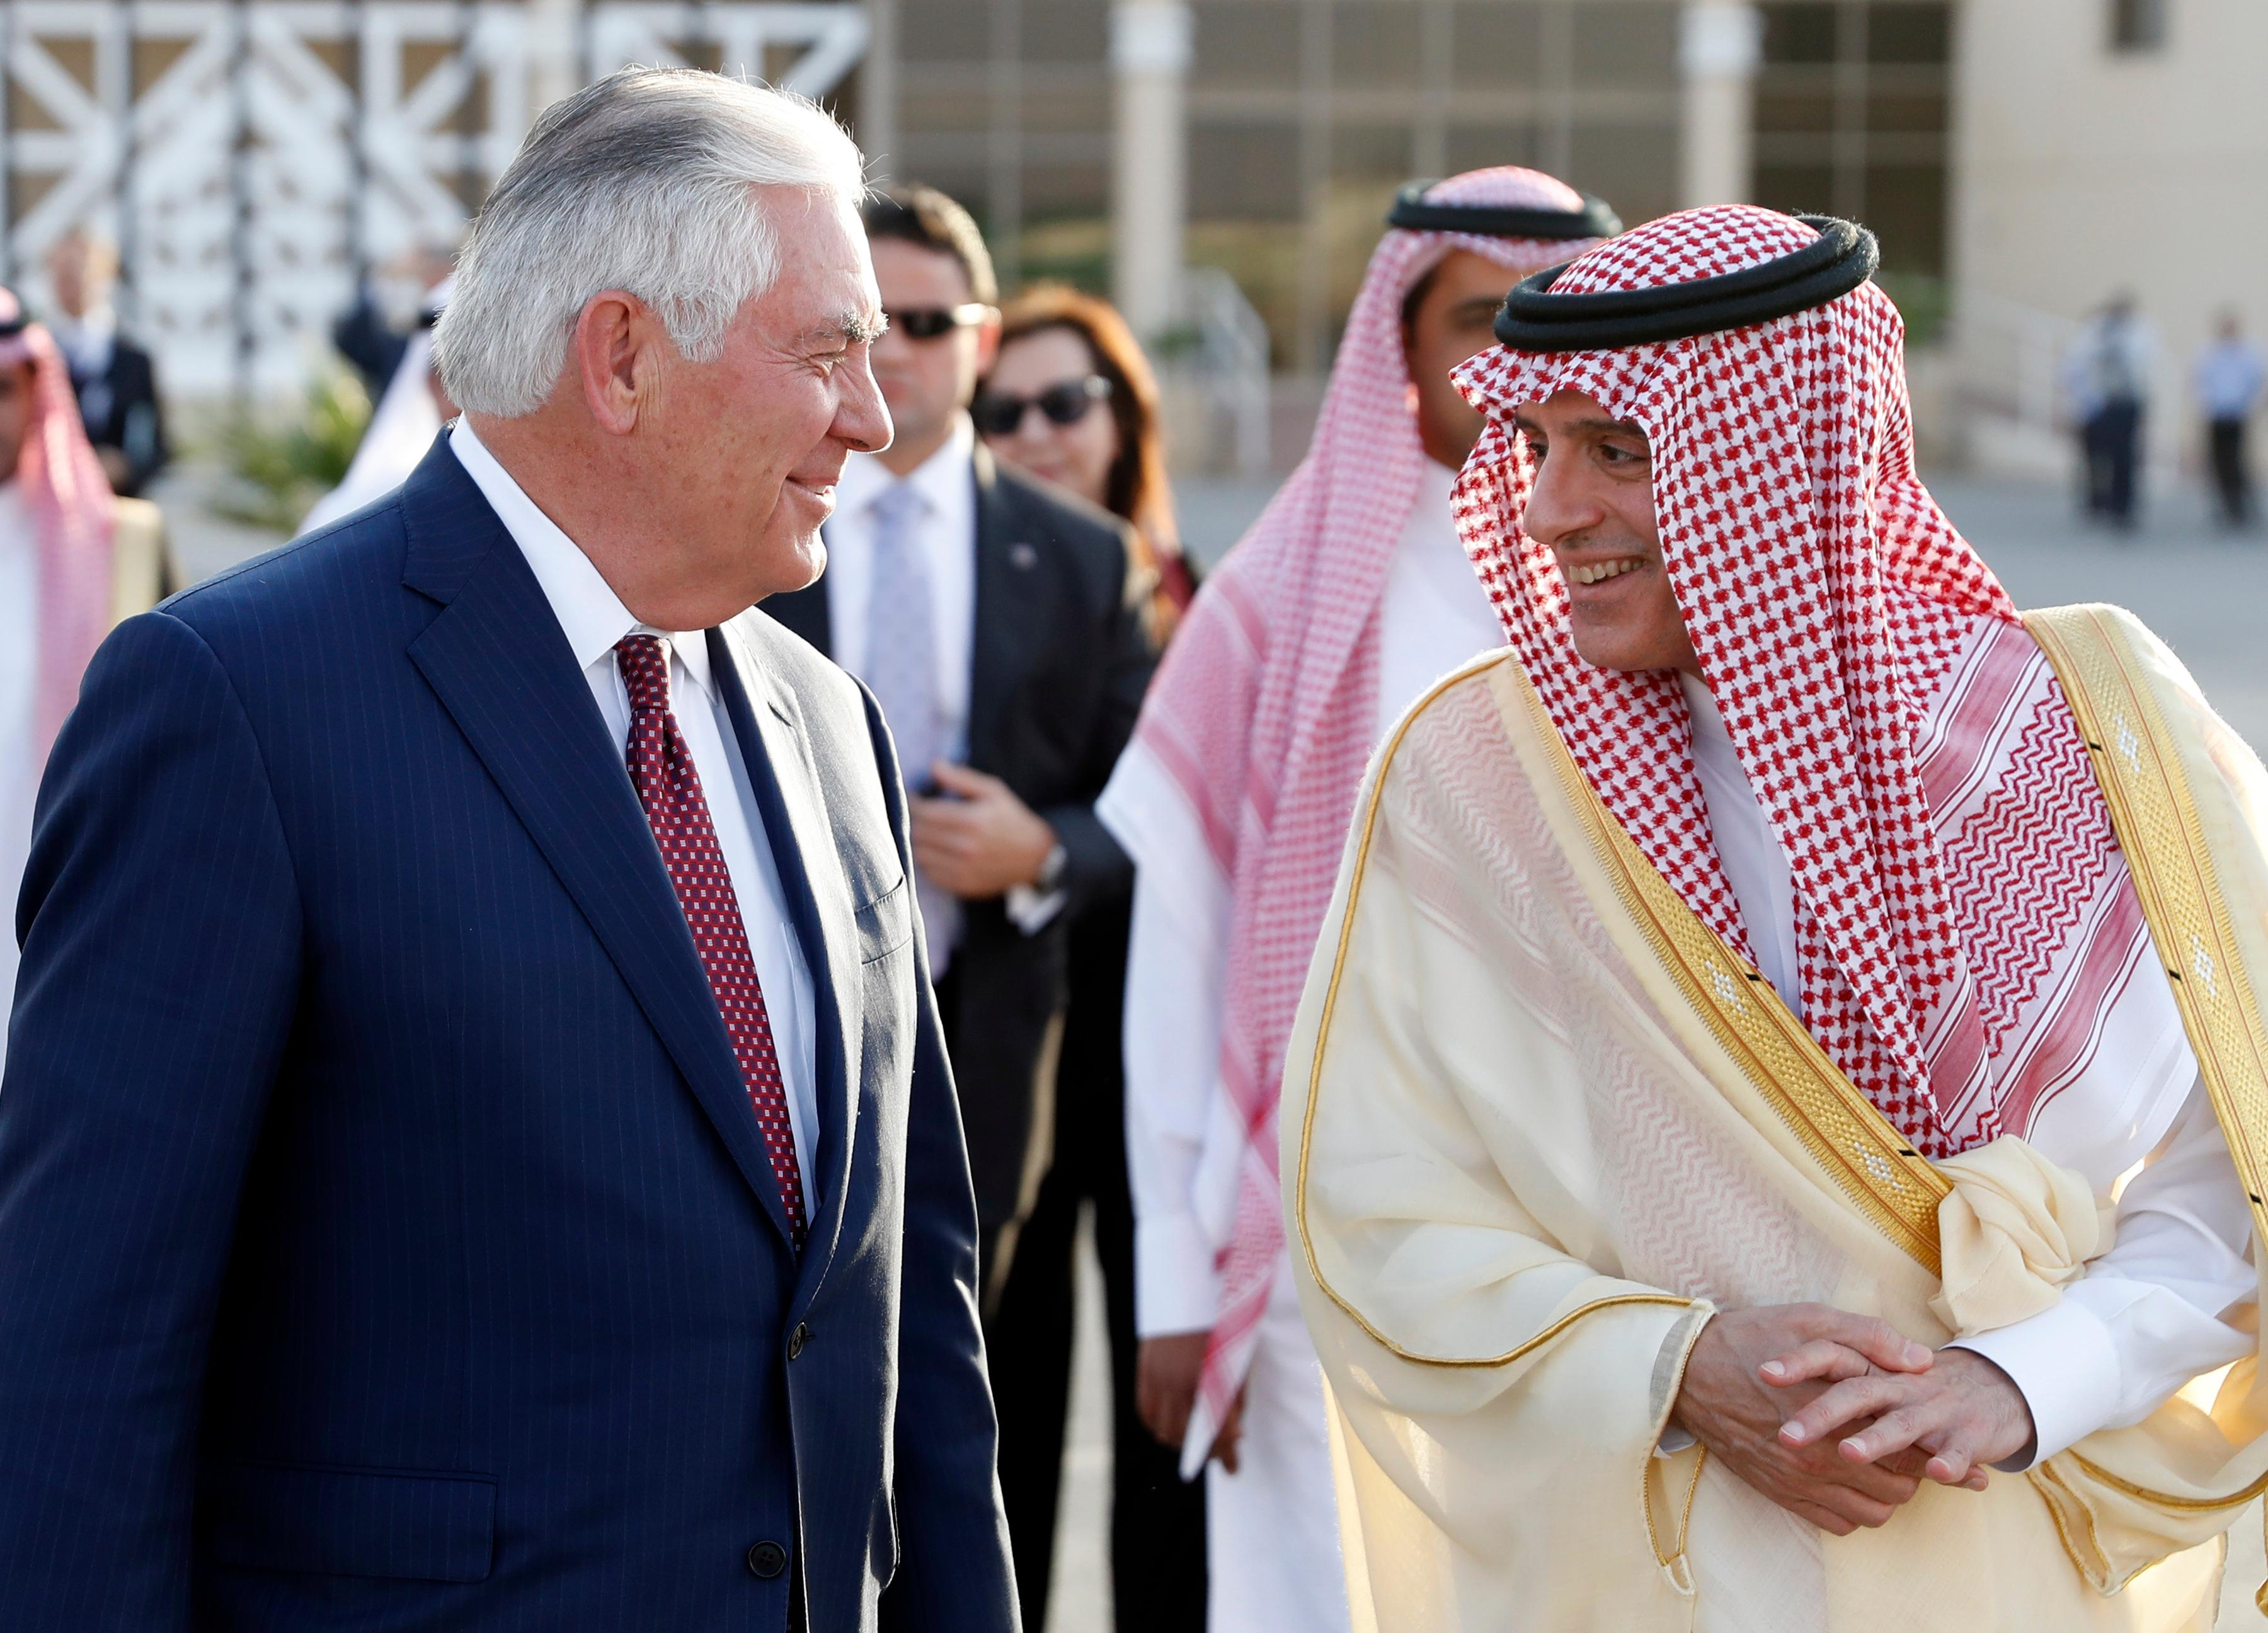 Secretary of State Rex Tillerson speaks with Saudi Foreign Minister Adel Ahmed Al-Jubeir after a press availability as TIllerson walks to his plane, Sunday, Oct. 22, 2017, in Riyadh, Saudi Arabia. (AP Photo/Alex Brandon, Pool)